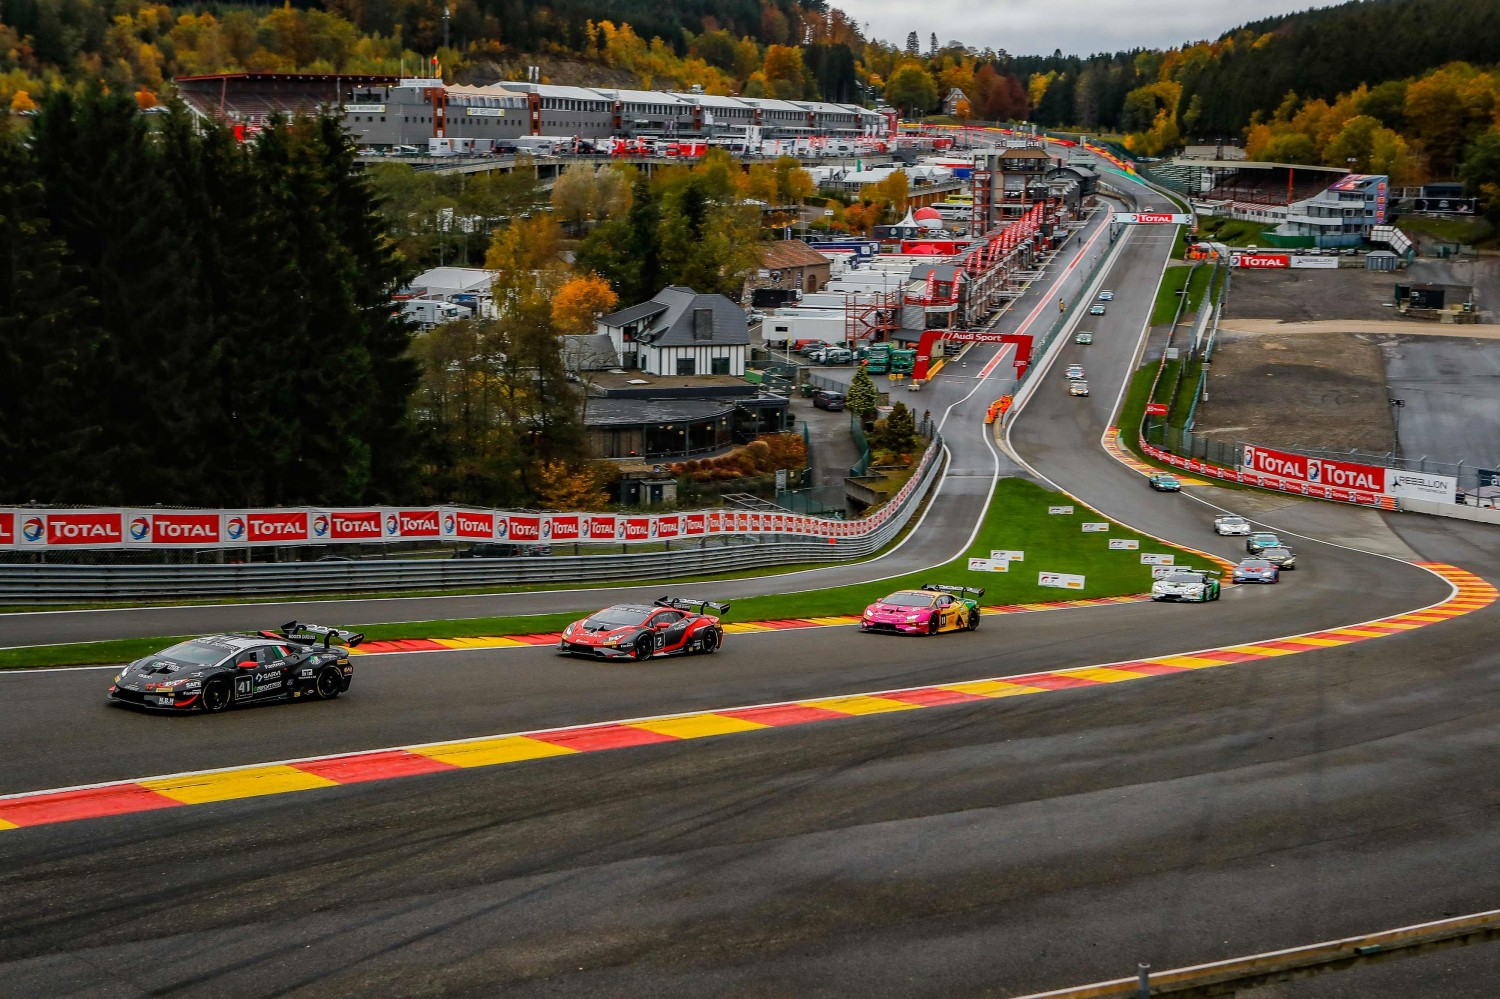 2021 Lamborghini Super Trofeo Europe calendar to feature five GT World Challenge Europe Powered by AWS support events